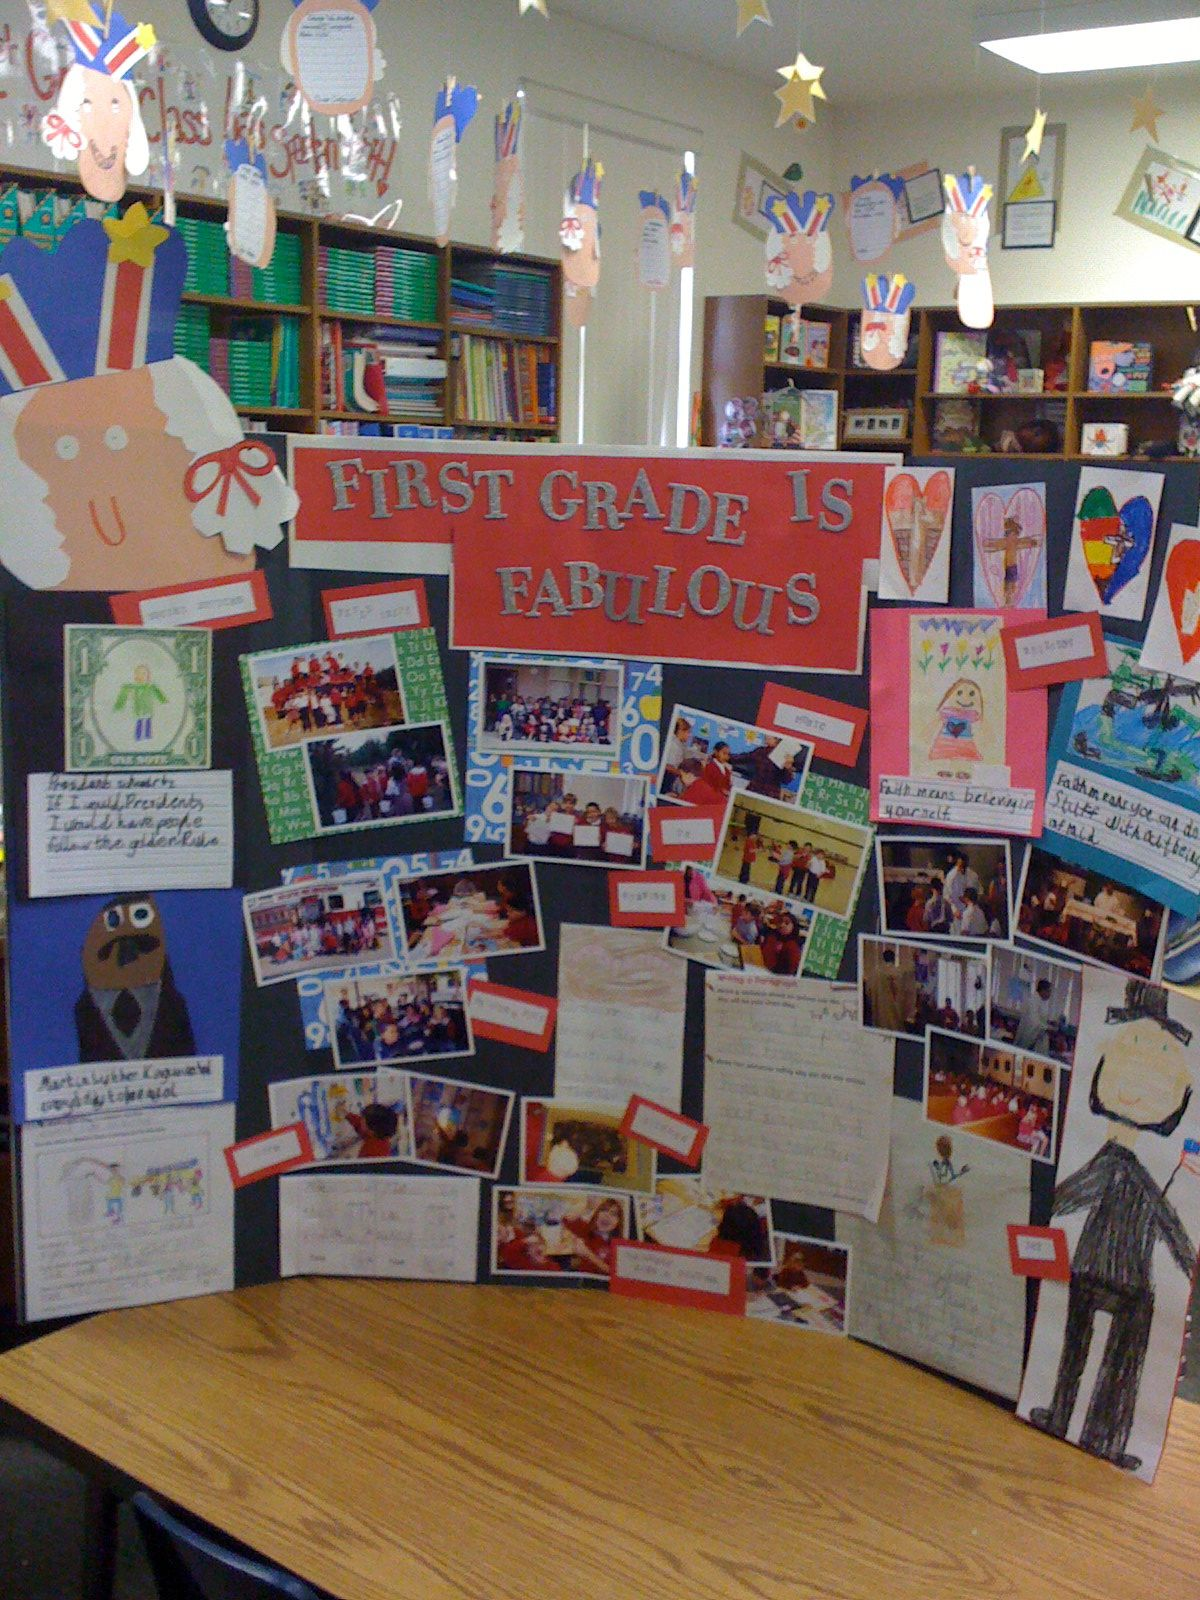 Classroom Presentation Ideas : A first grade presentation board i put together for our